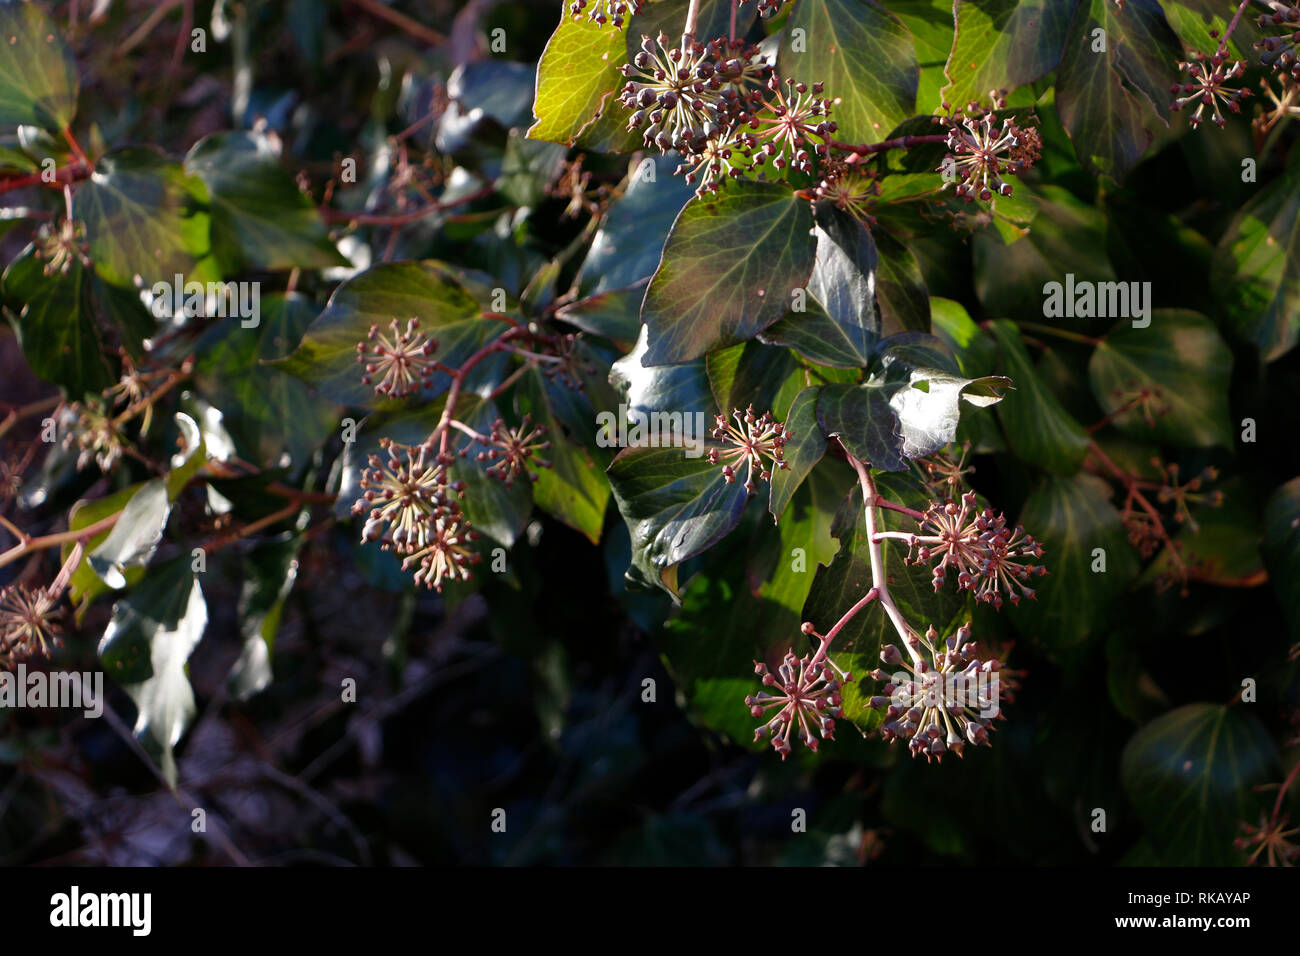 Ball-shaped creeper seeds under the winter sunlight - Stock Image